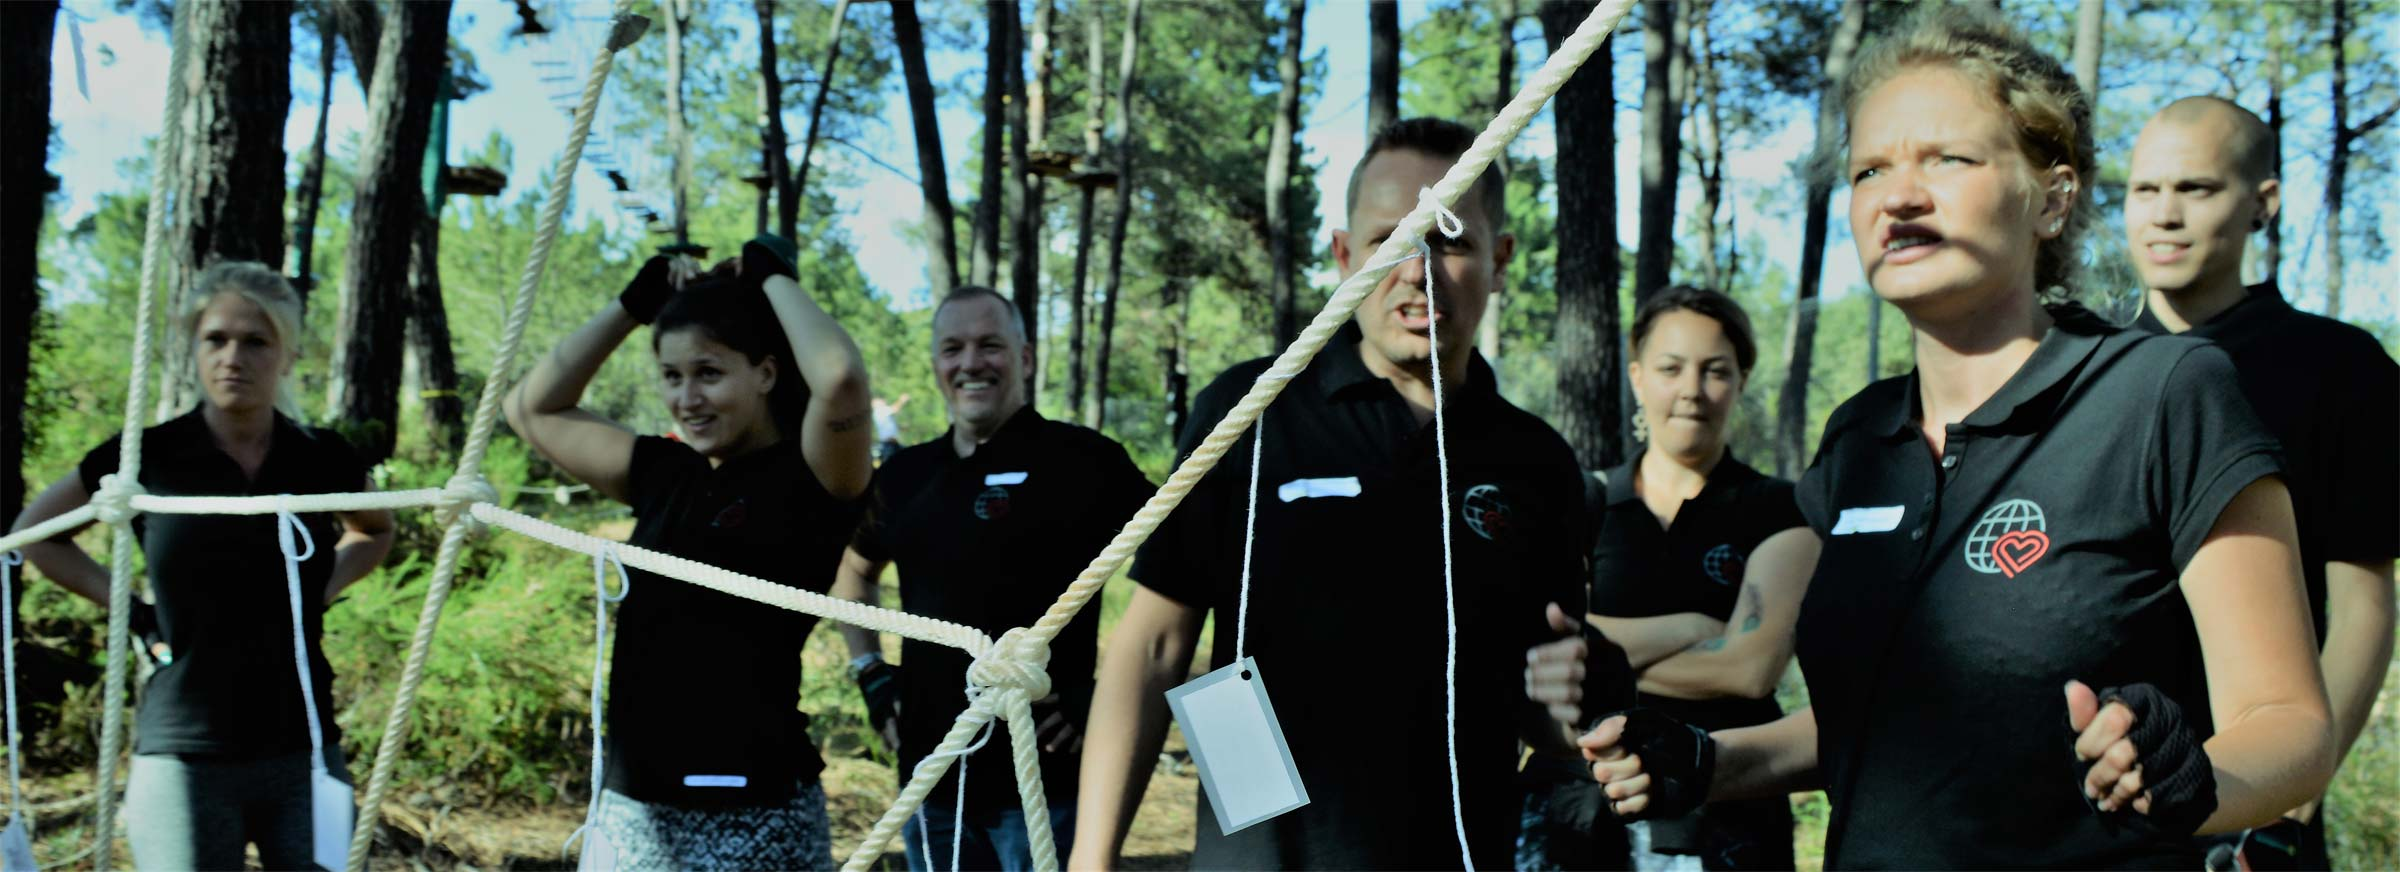 empresa team building madrid amazonia team factory